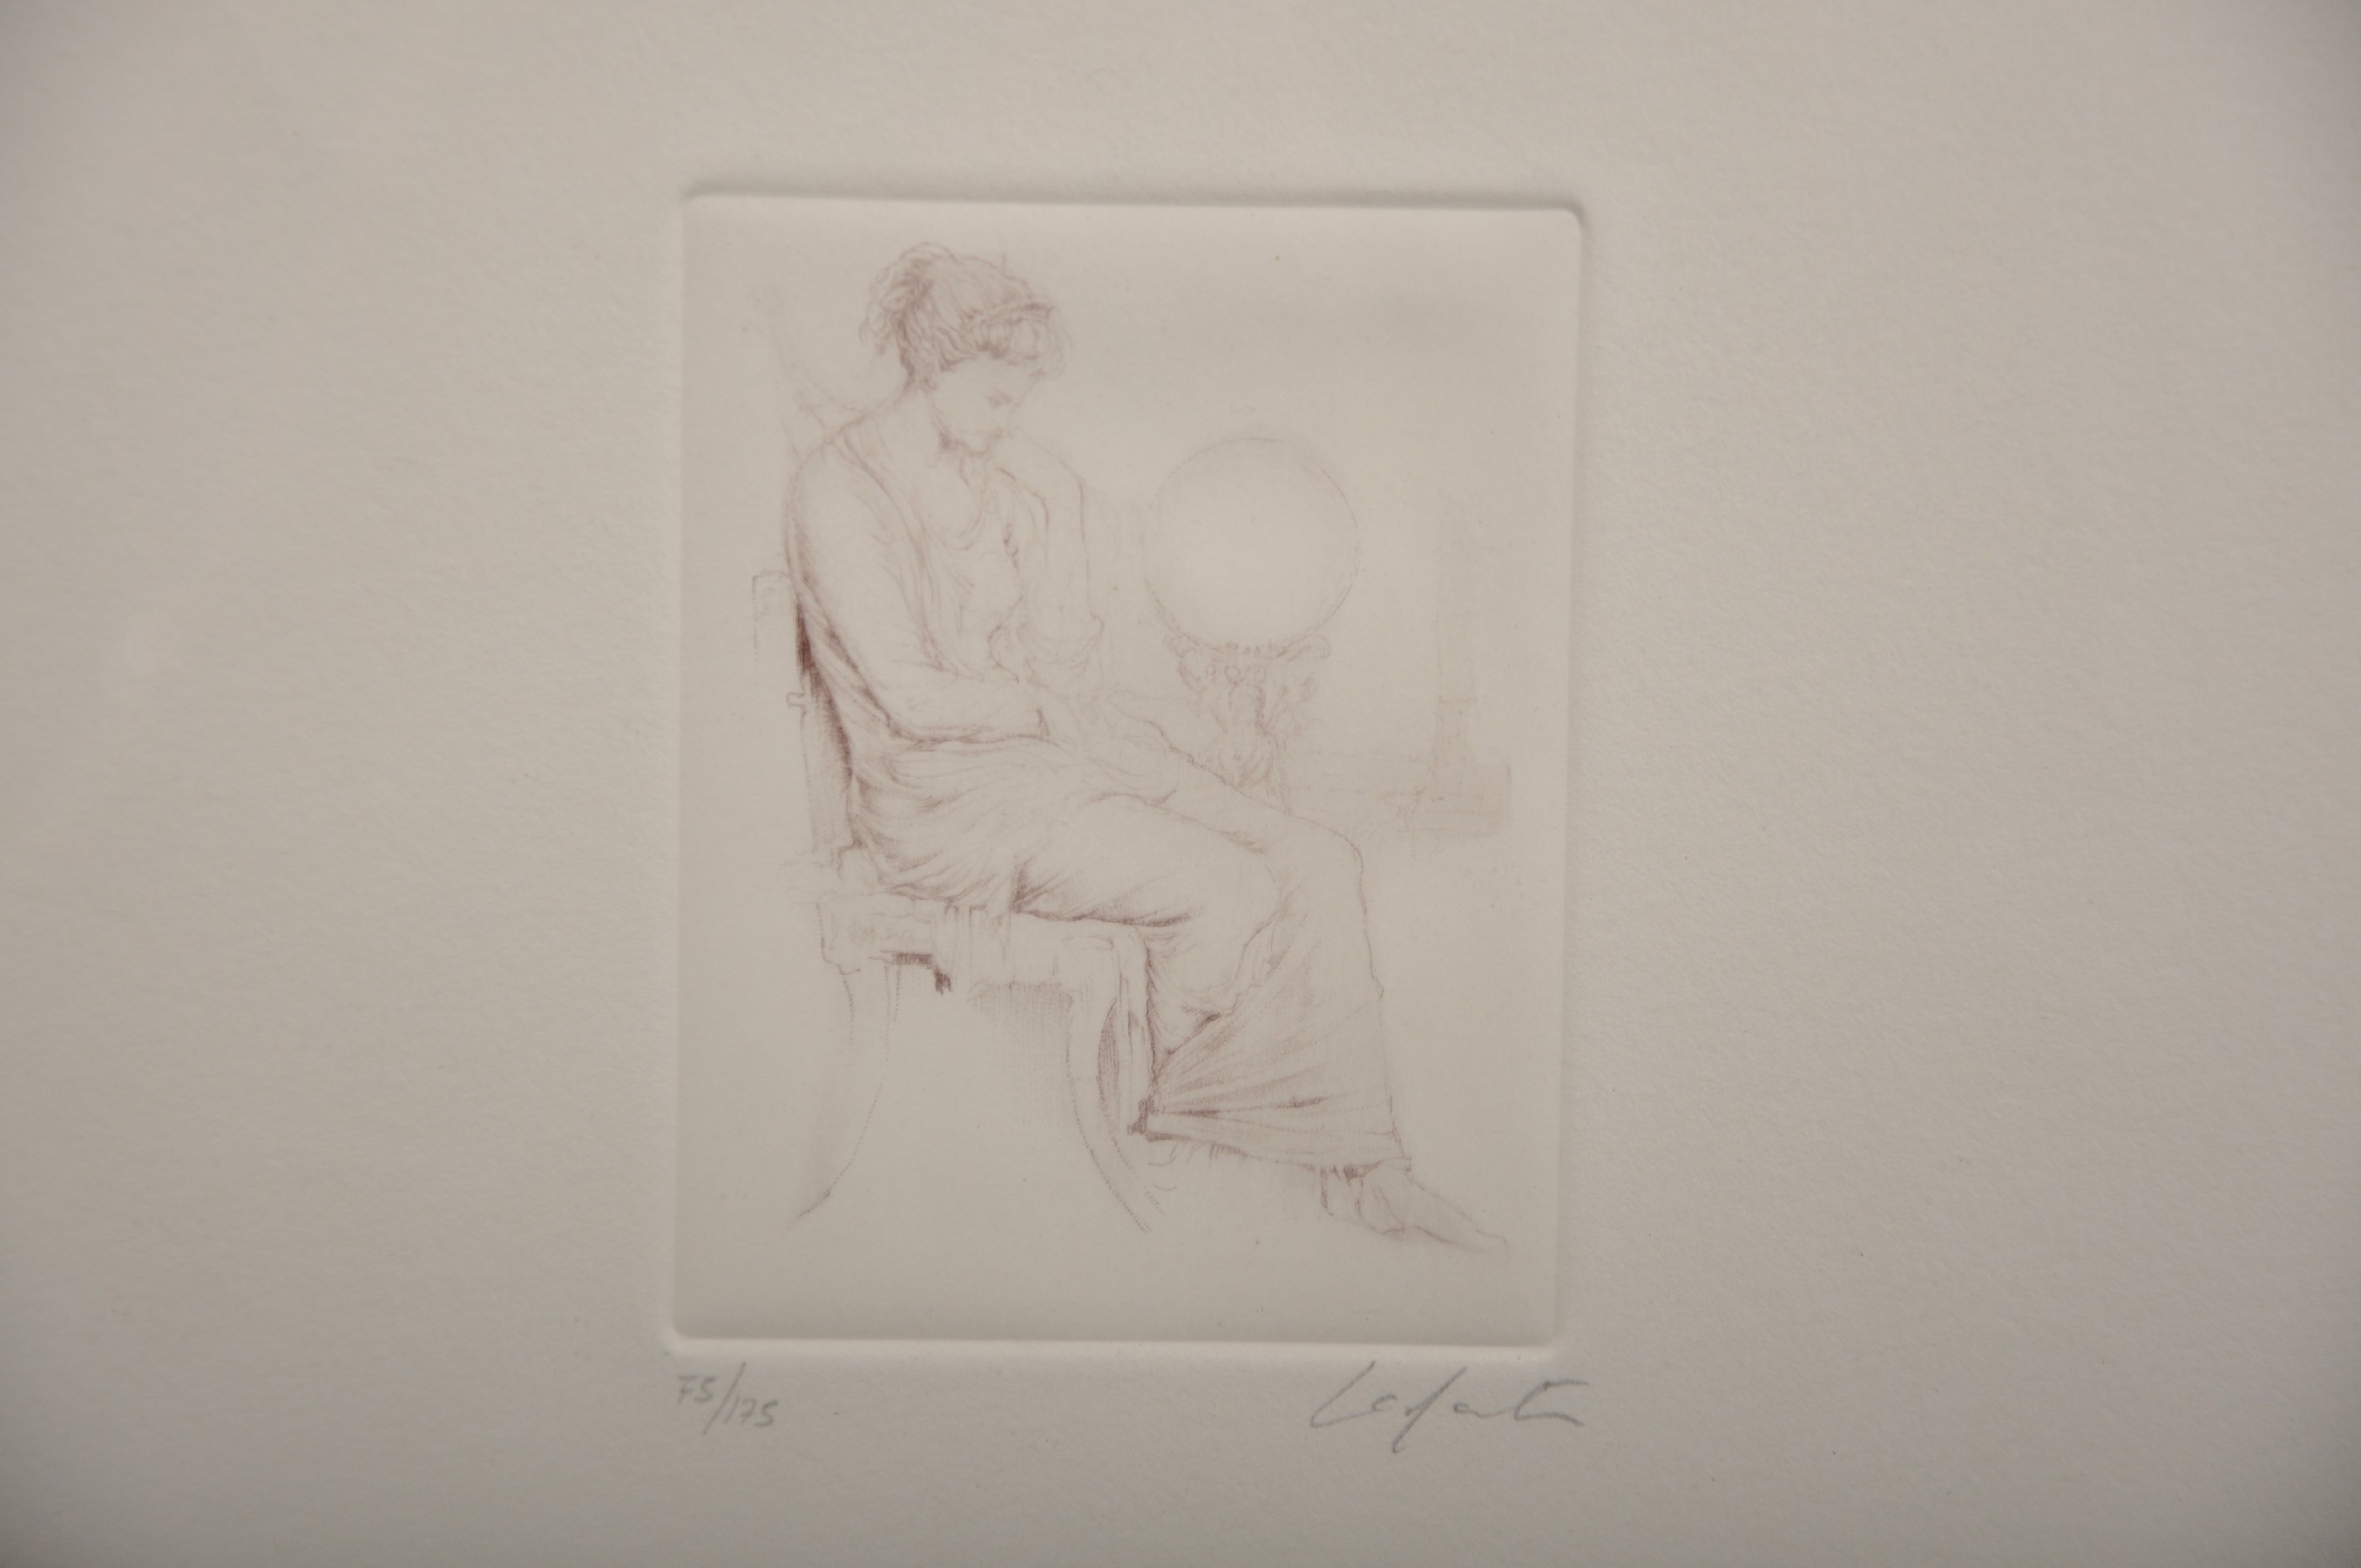 Laforte (20th Century) European. Study of a Seated Maiden, Etching, Indistinctly Signed and Numbered - Image 3 of 4